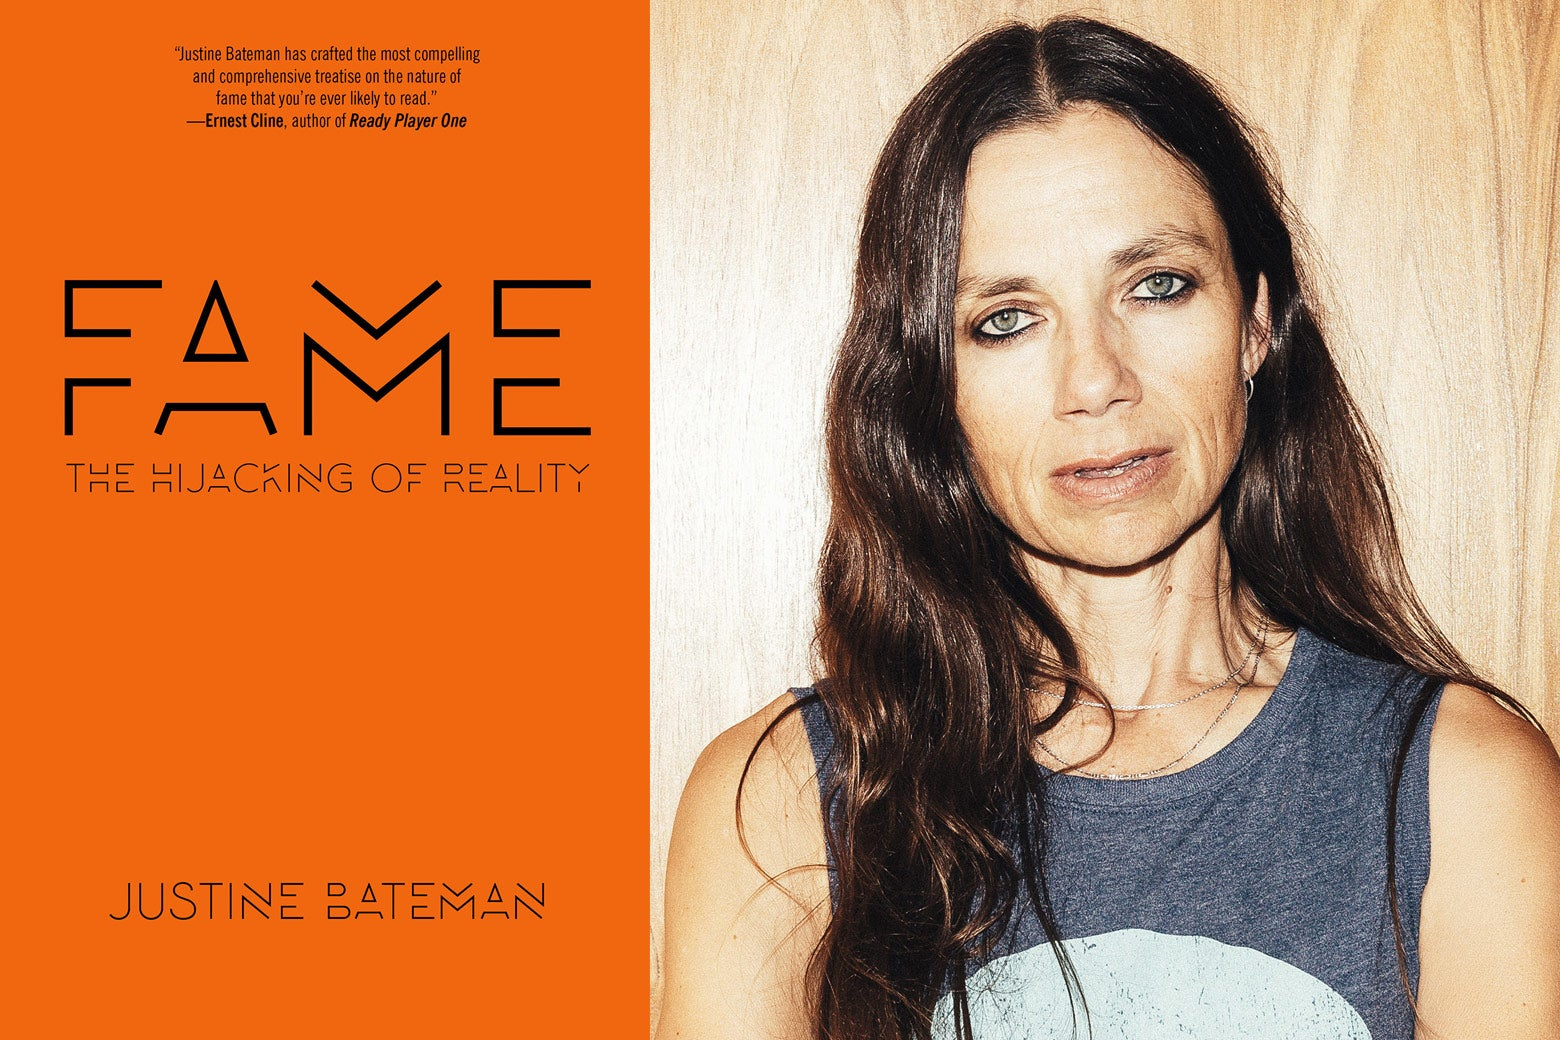 The cover of Fame: The Hijacking of Reality and a close-up of Justine Bateman, side by side.